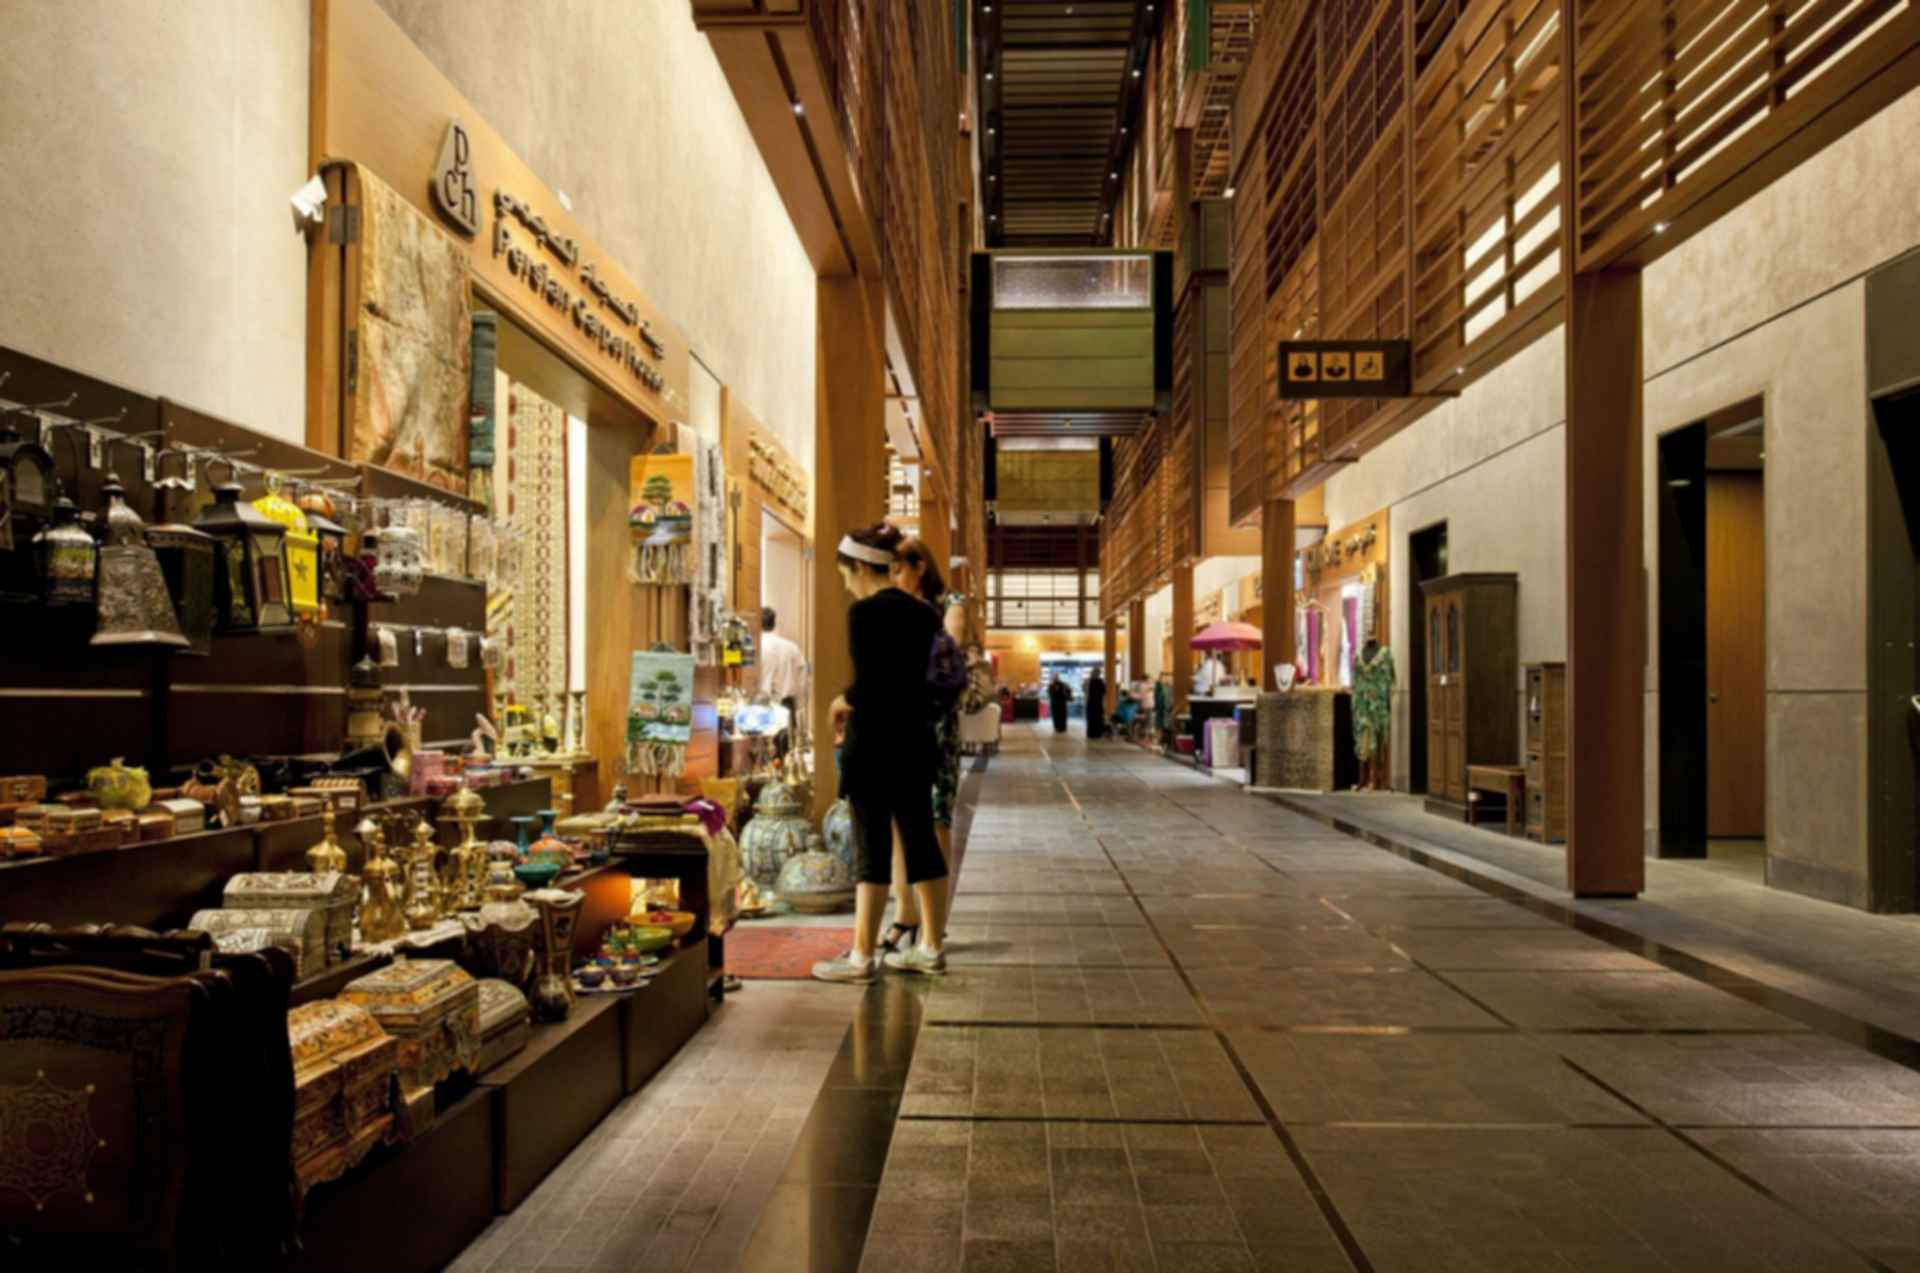 Abu Dhabi Central Market - interior